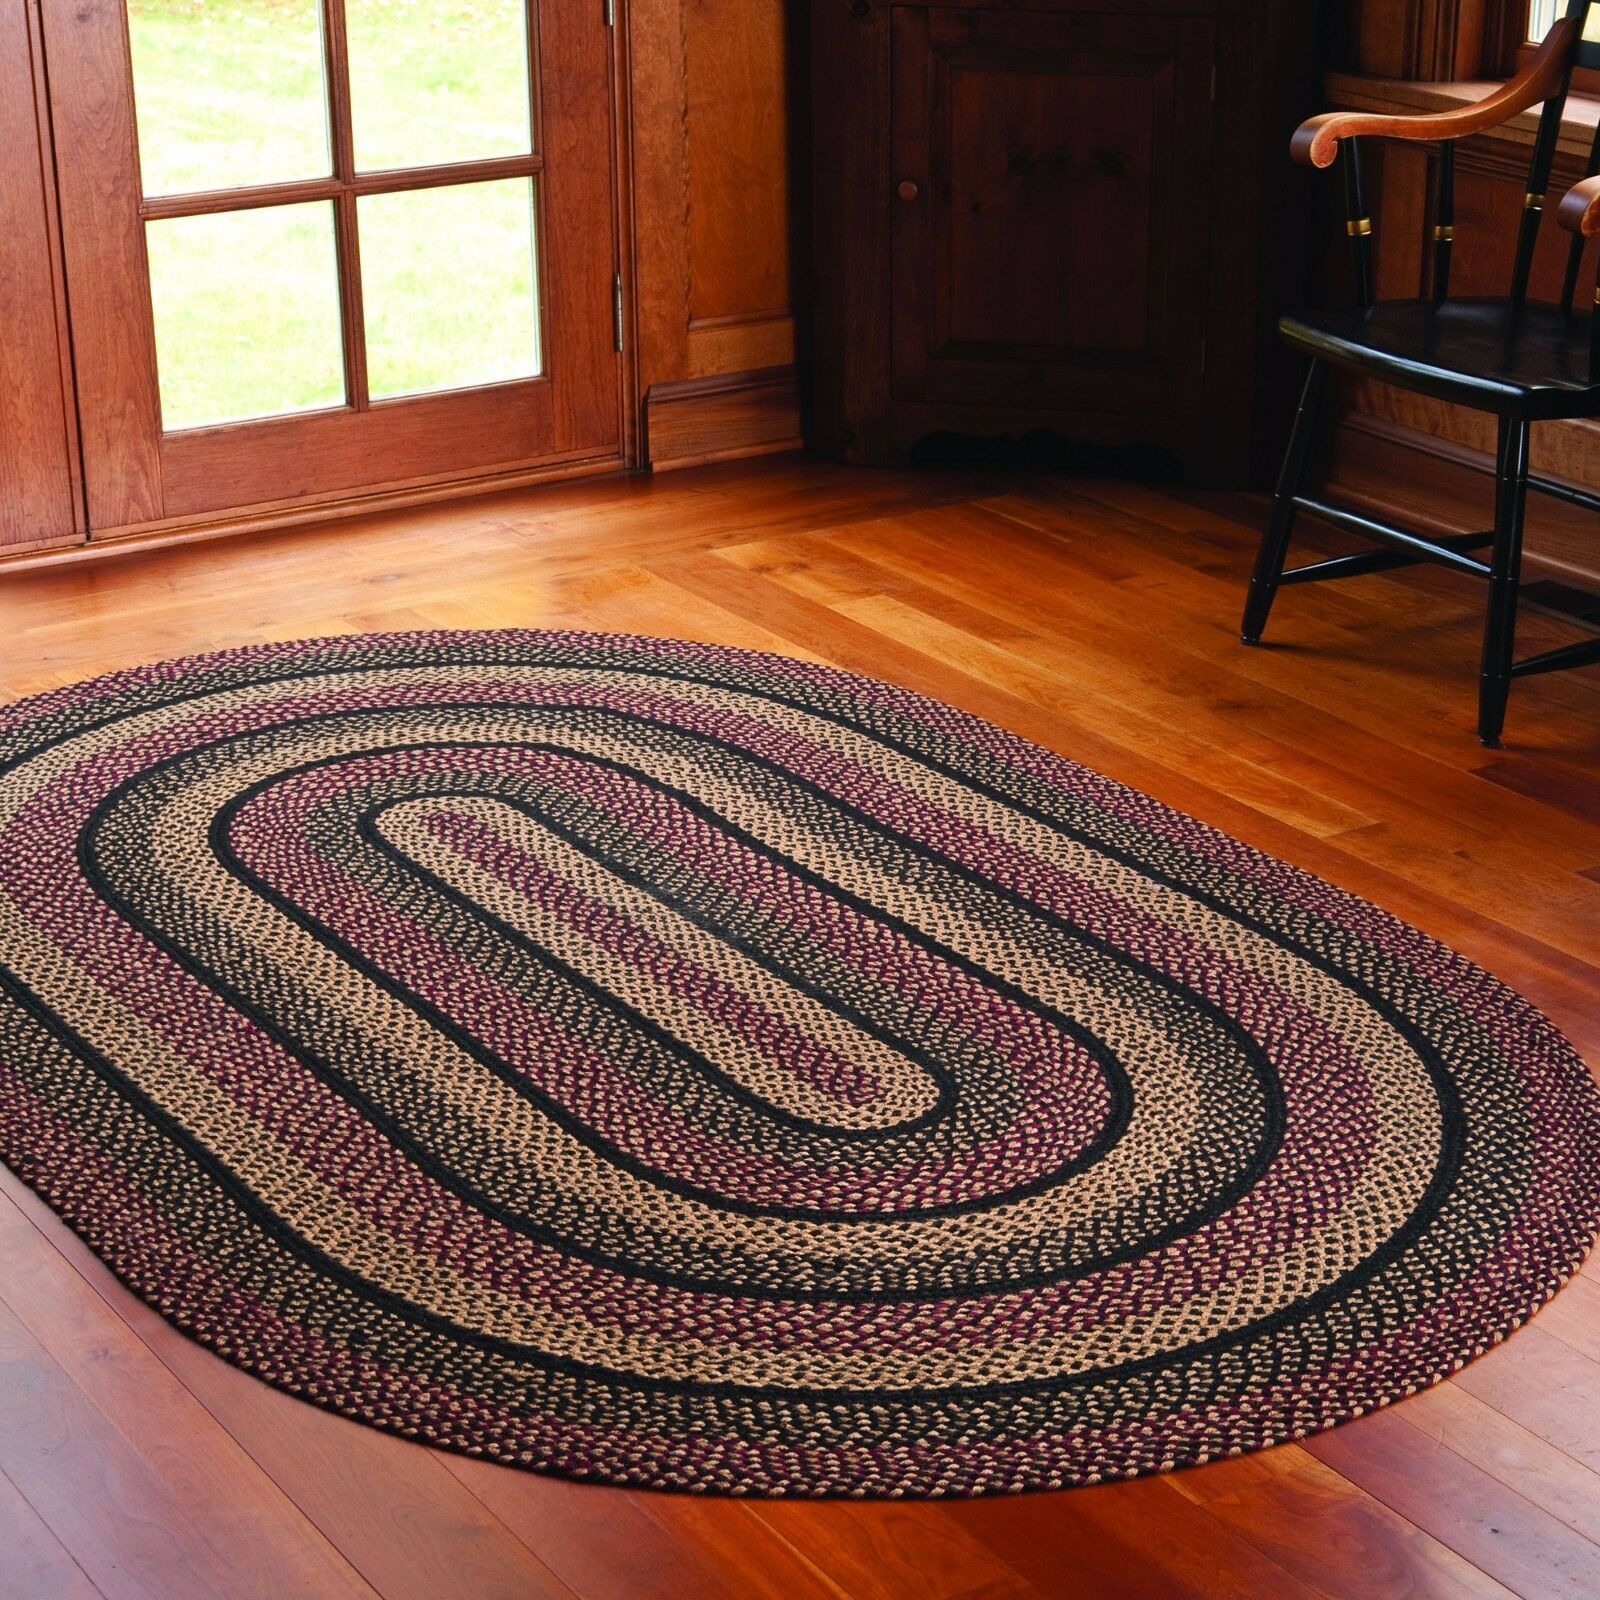 Ihf Home Decor Braided Area Rug 20 Quot X 30 Quot Jute Oval Carpet